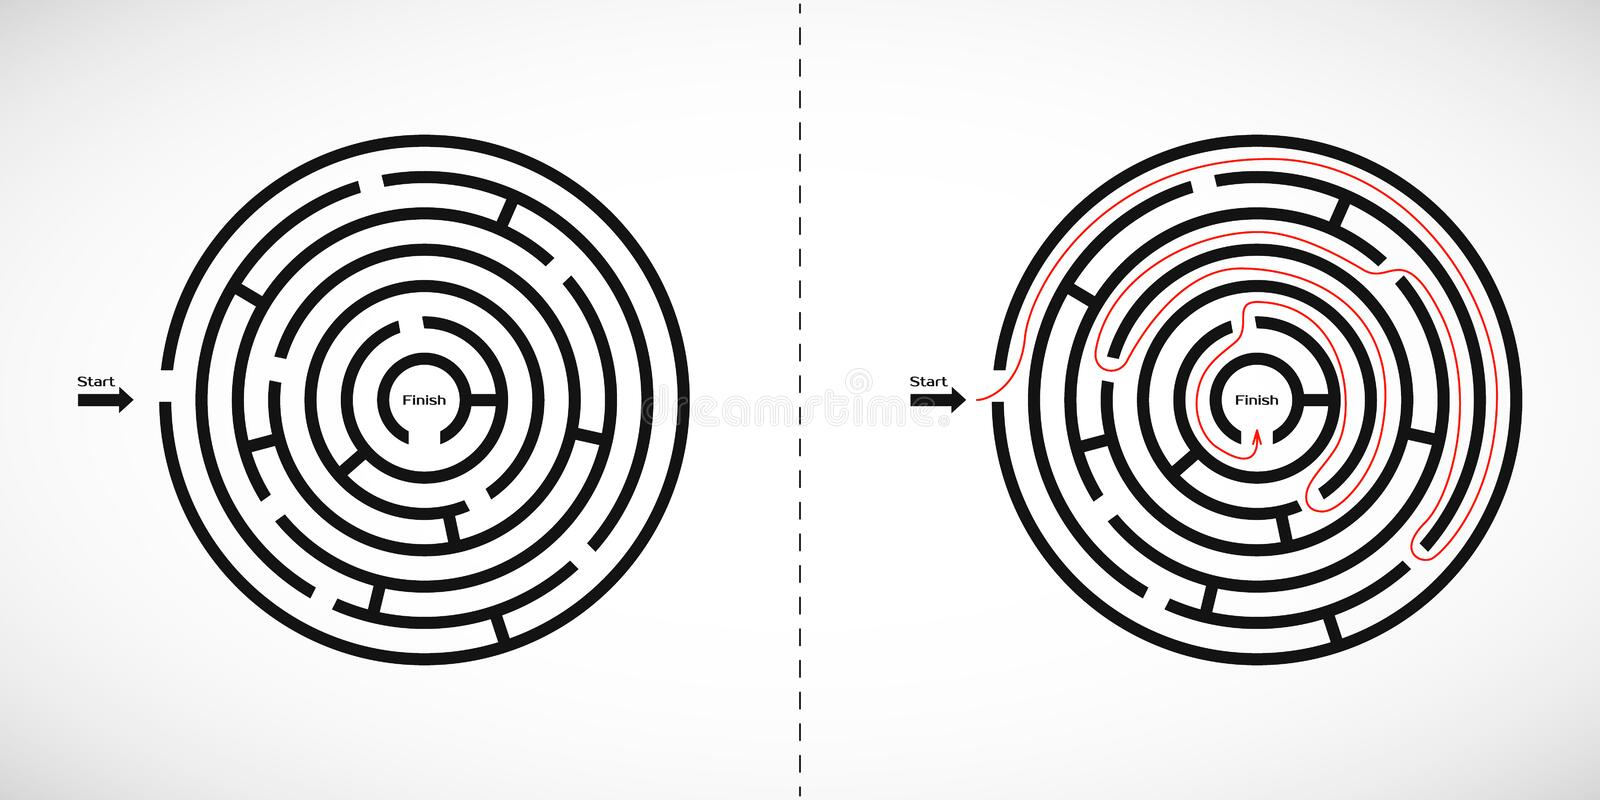 Abstract maze labyrinth icon. Labyrinth shape design element with one entrance and one exit. Vector illustration royalty free illustration